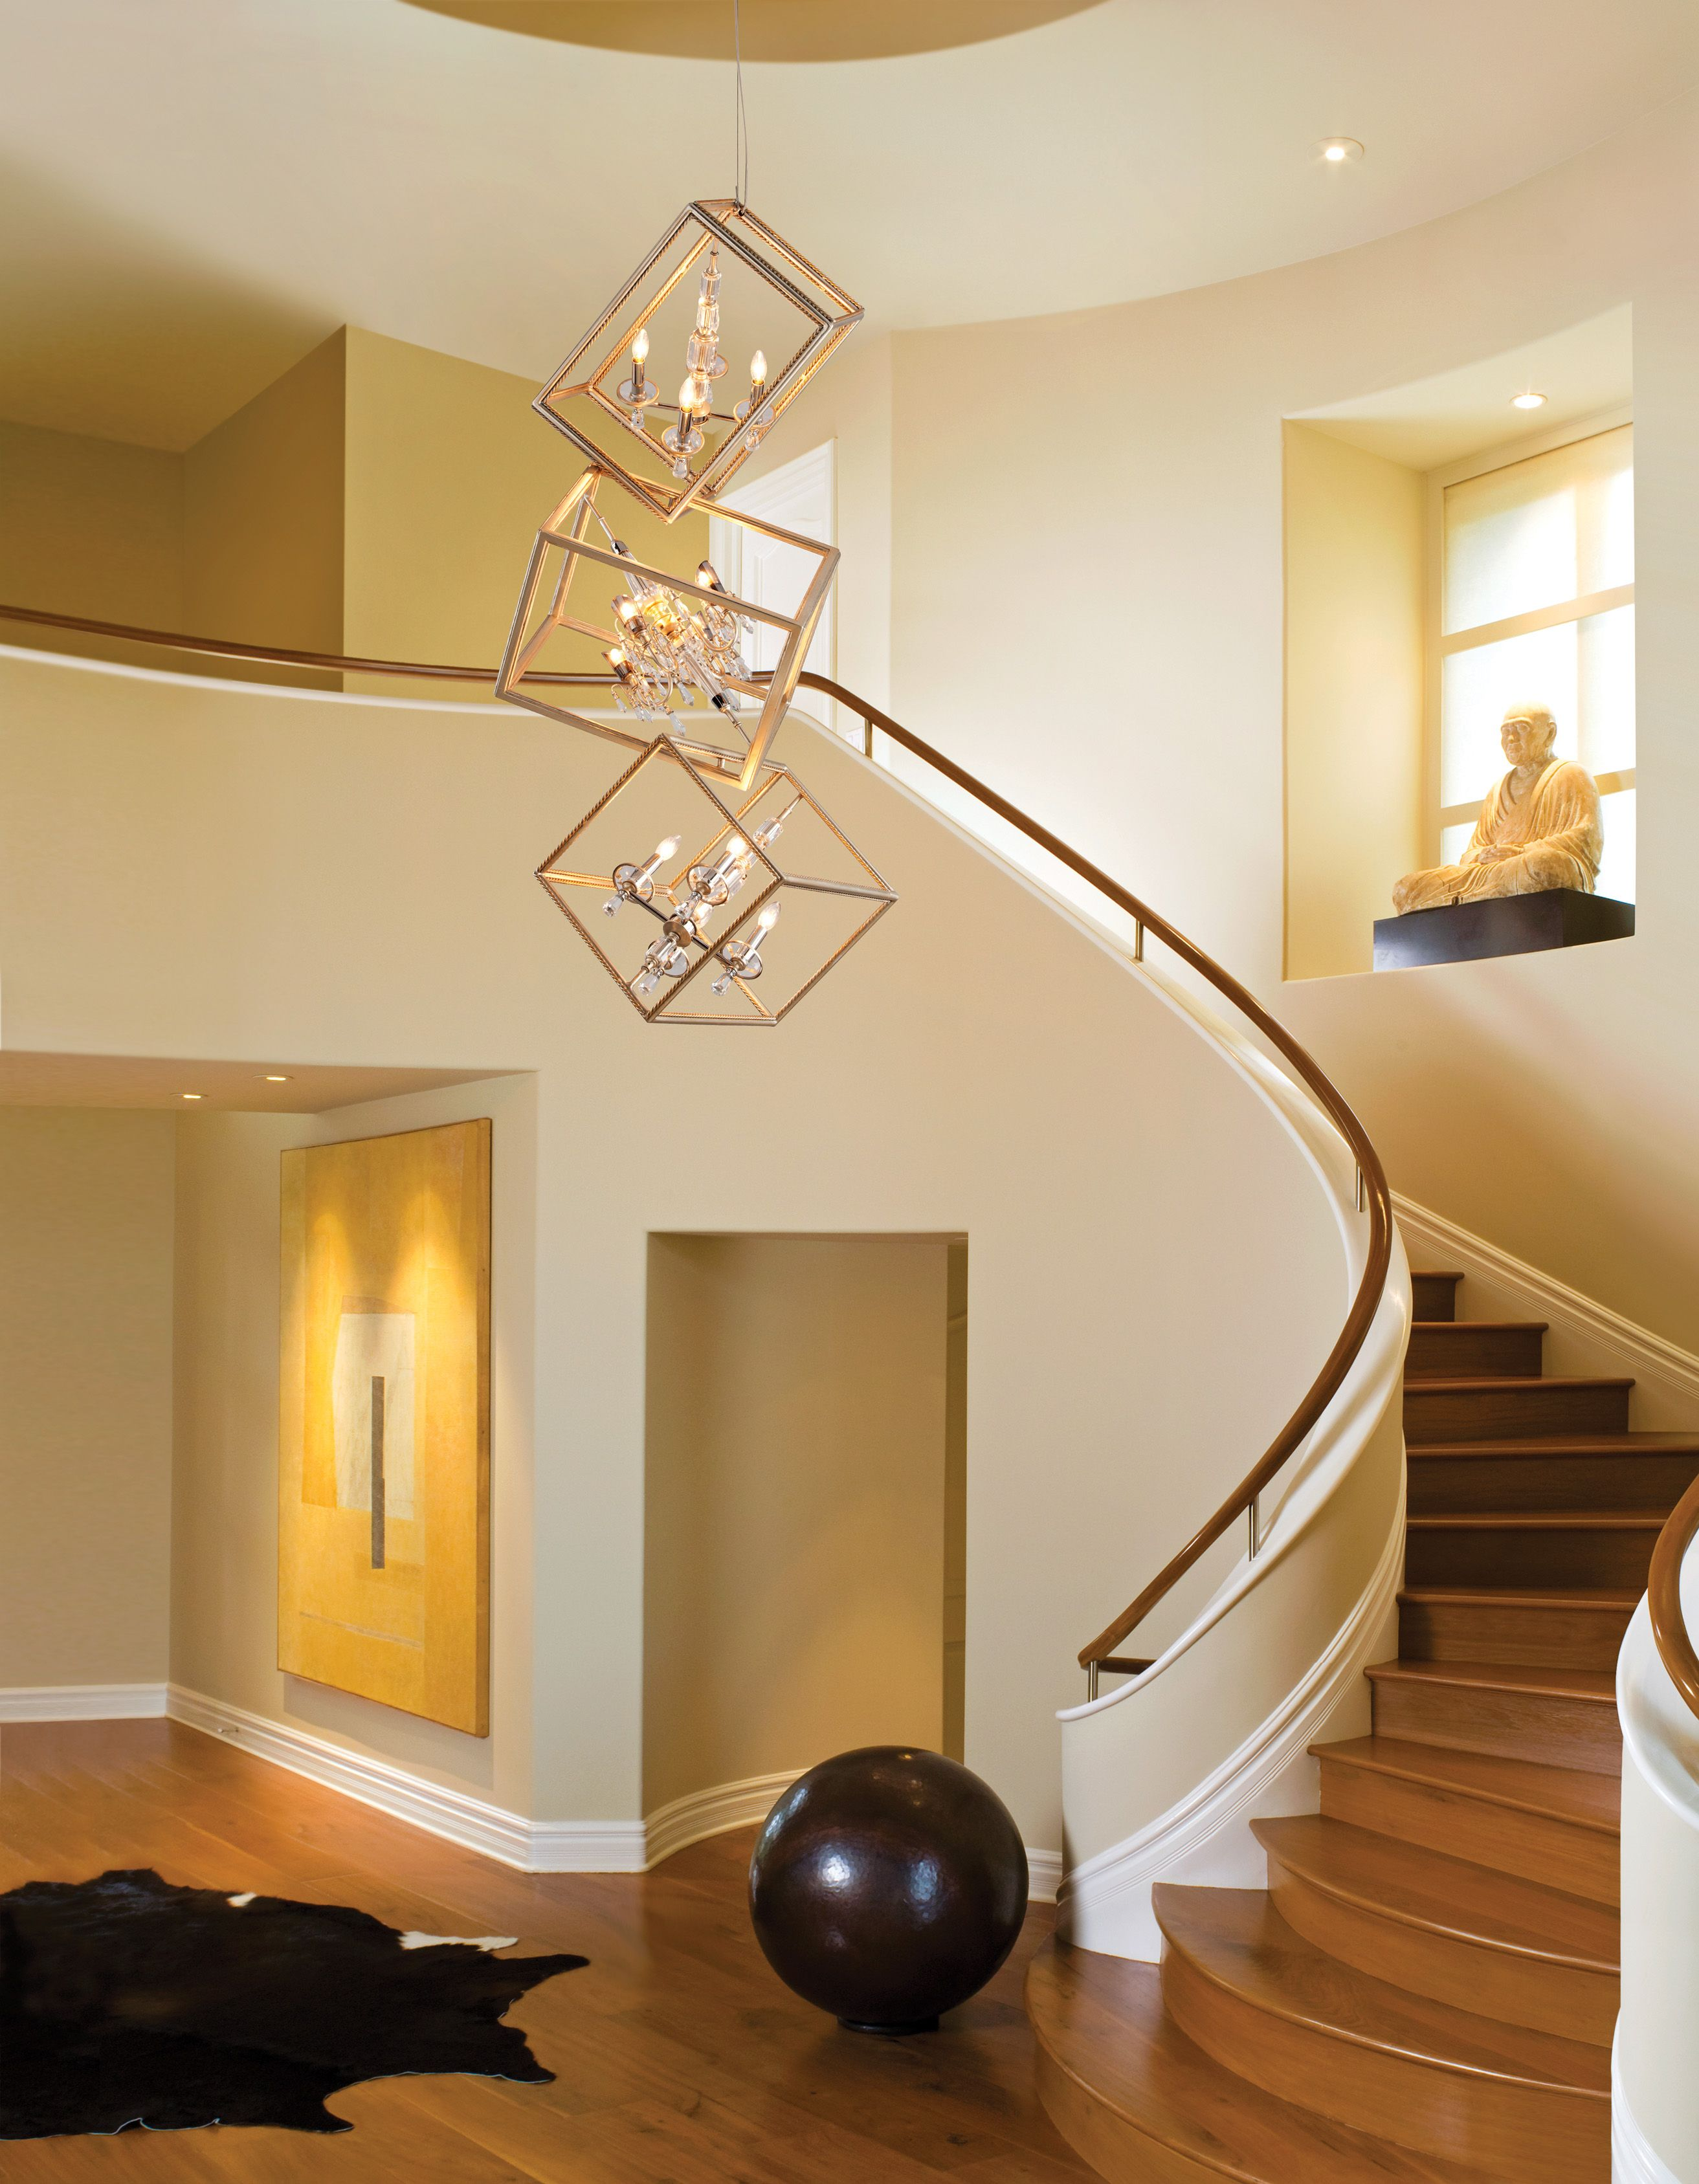 Unique Hanging Lights Interior Modern 2 Story Entryway Lighting Design With